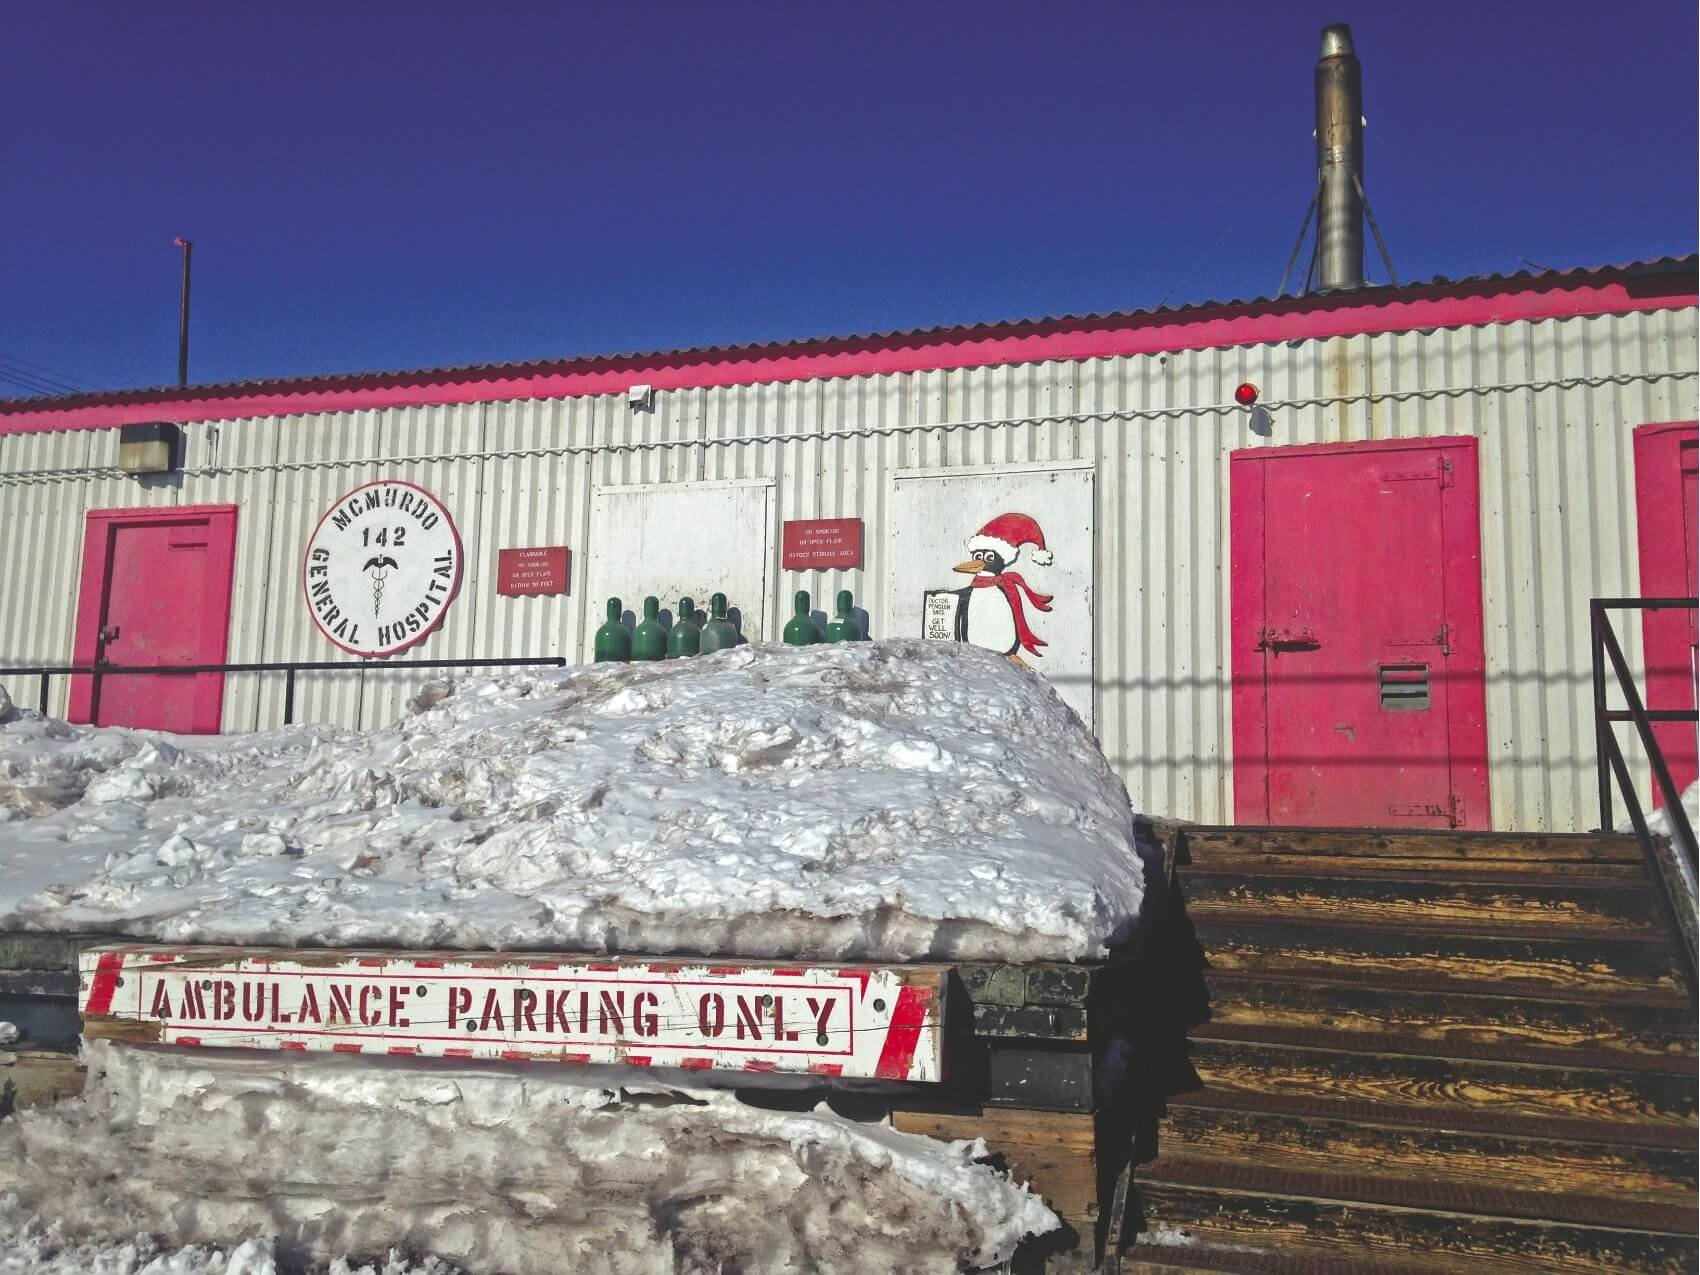 McMurdo General Hospital, the largest medical facility in Antarctica, provides both acute care and inpatient treatment. (Photo provided by James Pattarini)